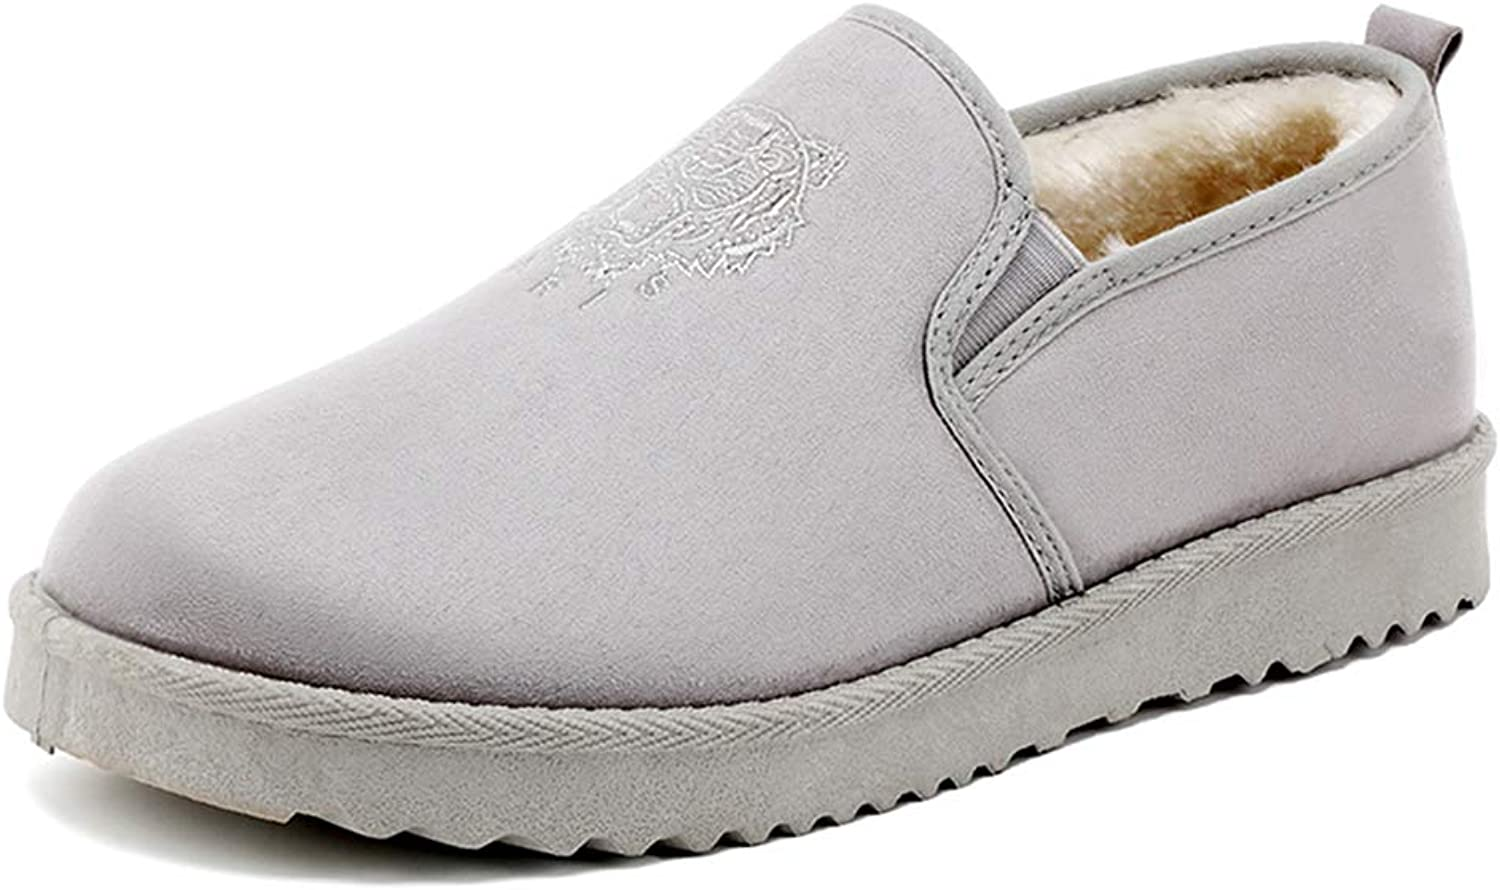 Men's shoes,Snow Boots,Fall Winter shoes Loafers & Slip-Ons Driving shoes Casual Walking shoes,Comfort Platform shoes Bullock shoes,Leather,Home,Office,A,41